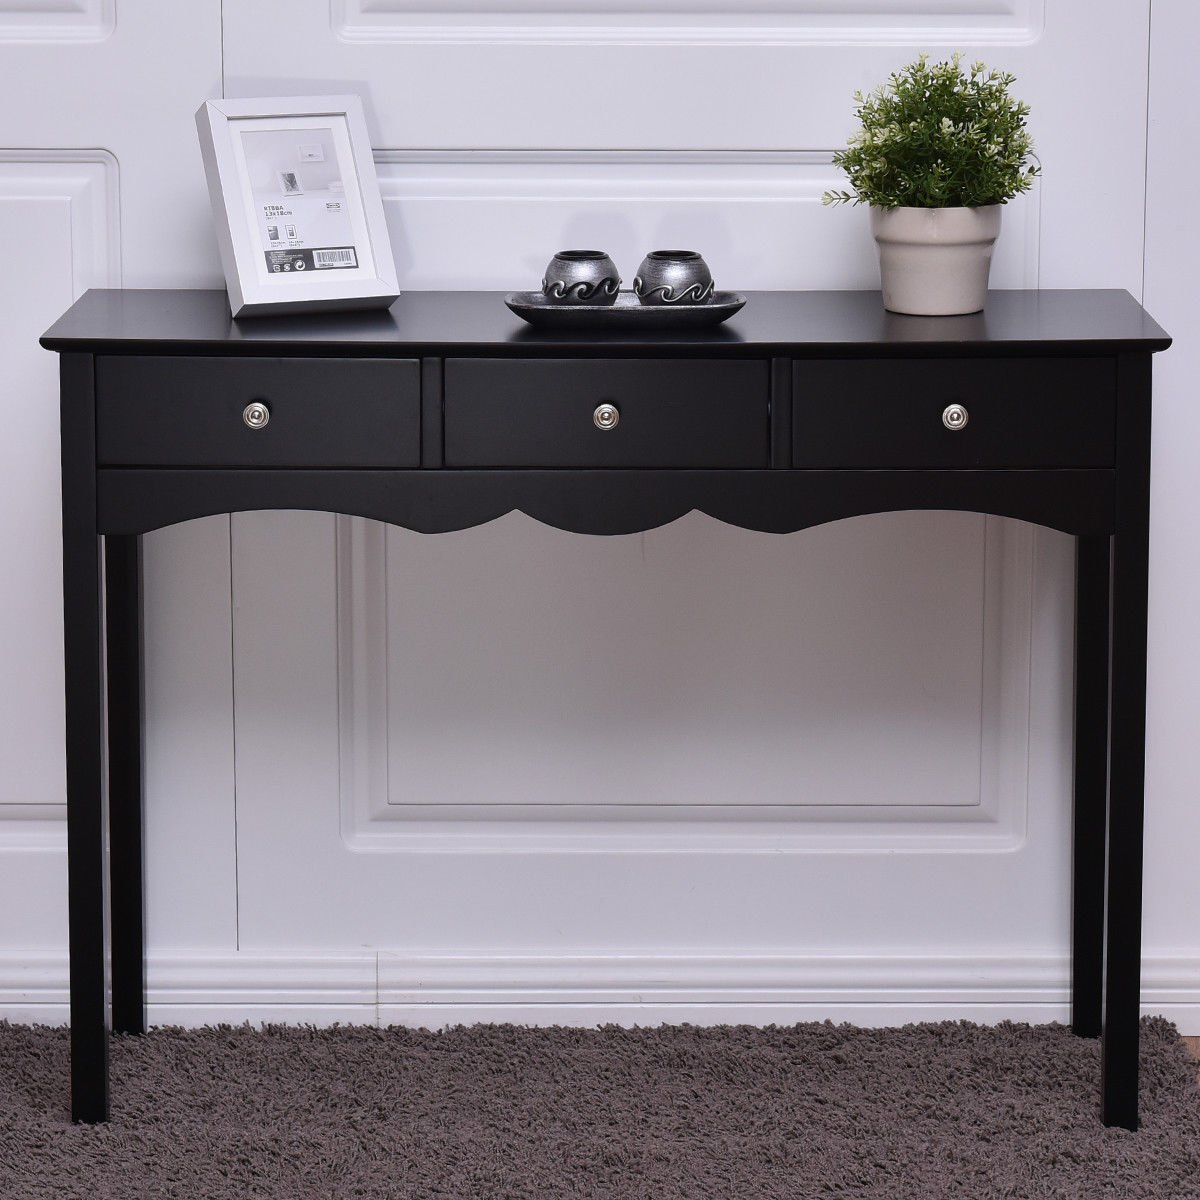 way console table hall side desk accent black with drawer drawers entryway globe lamp decorative cabinets furniture winnipeg square lucite white living room ideas trestle style